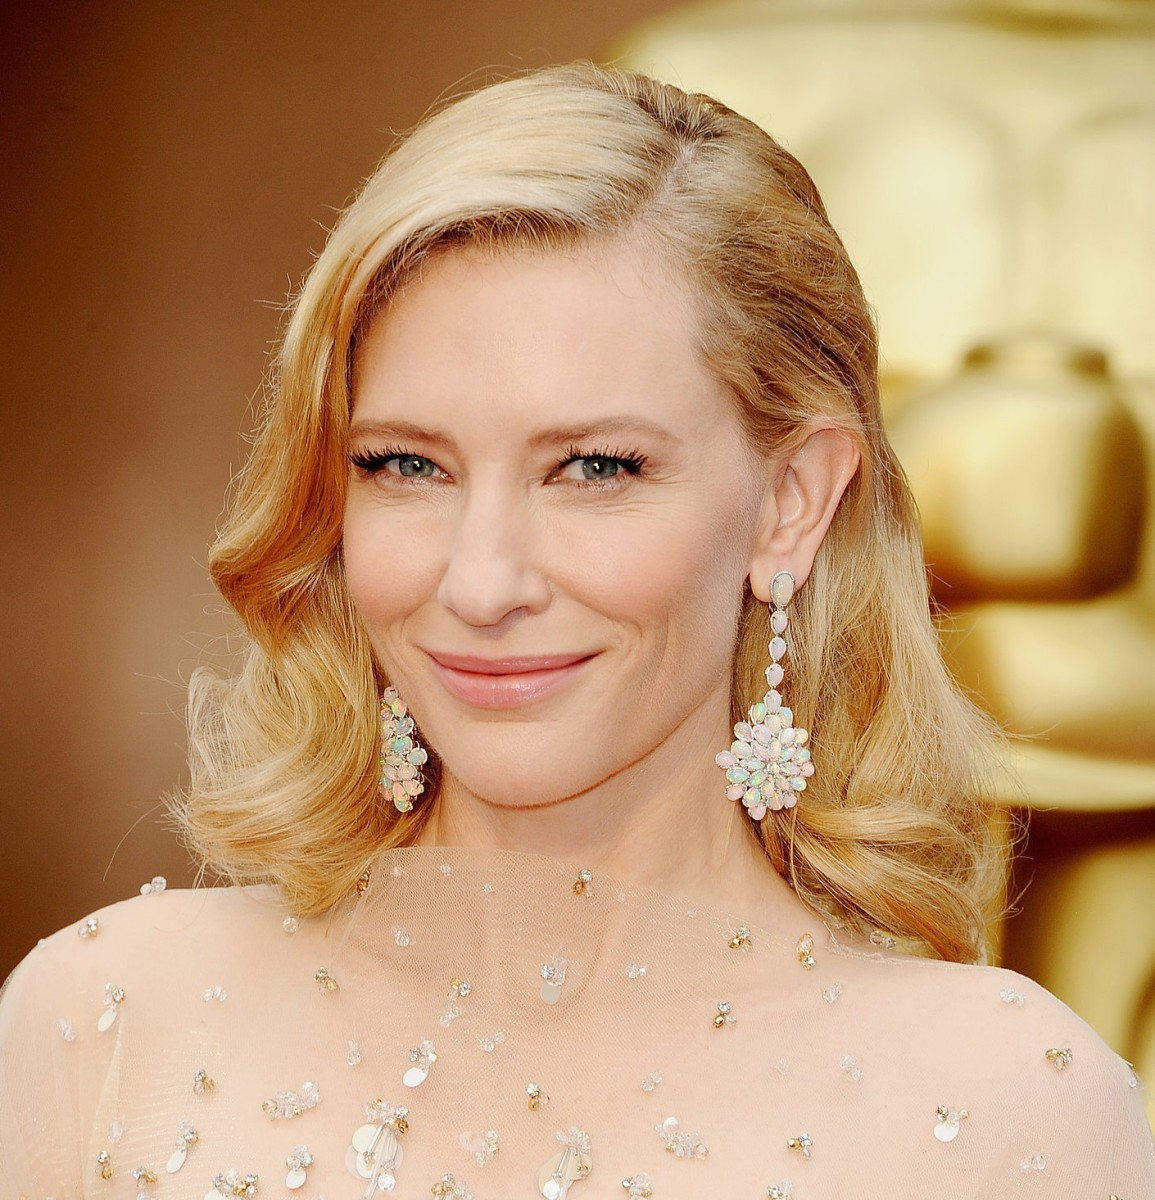 Cate Blanchett with light blonde hair and dangle earrings